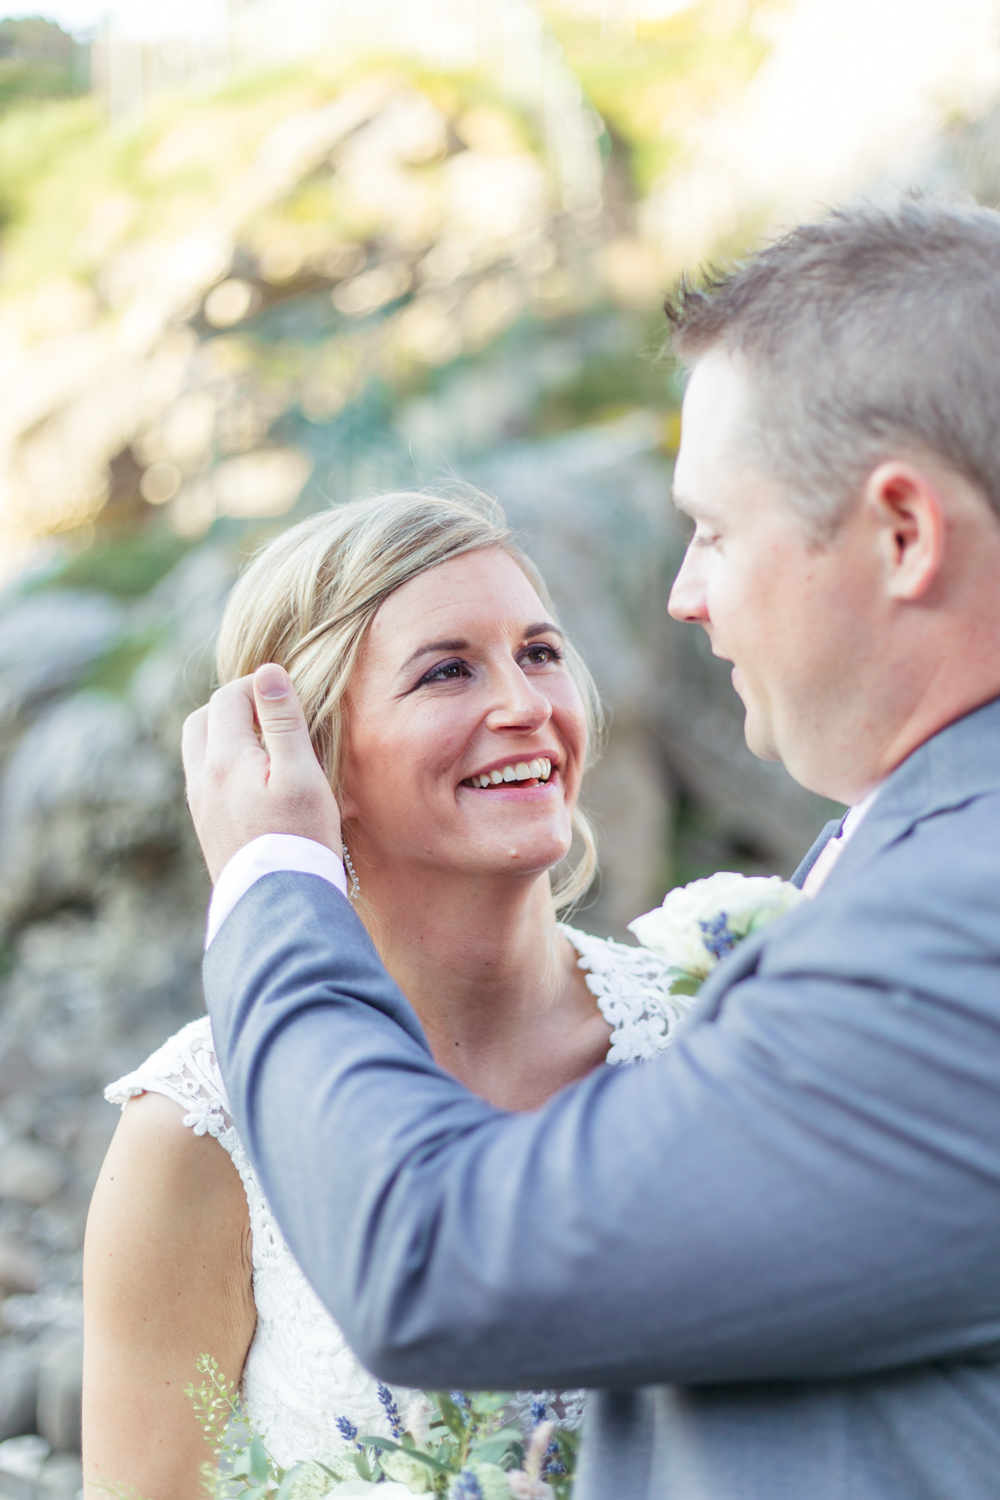 groom tenderly fixes the brides hair while she is smiling looking up at him